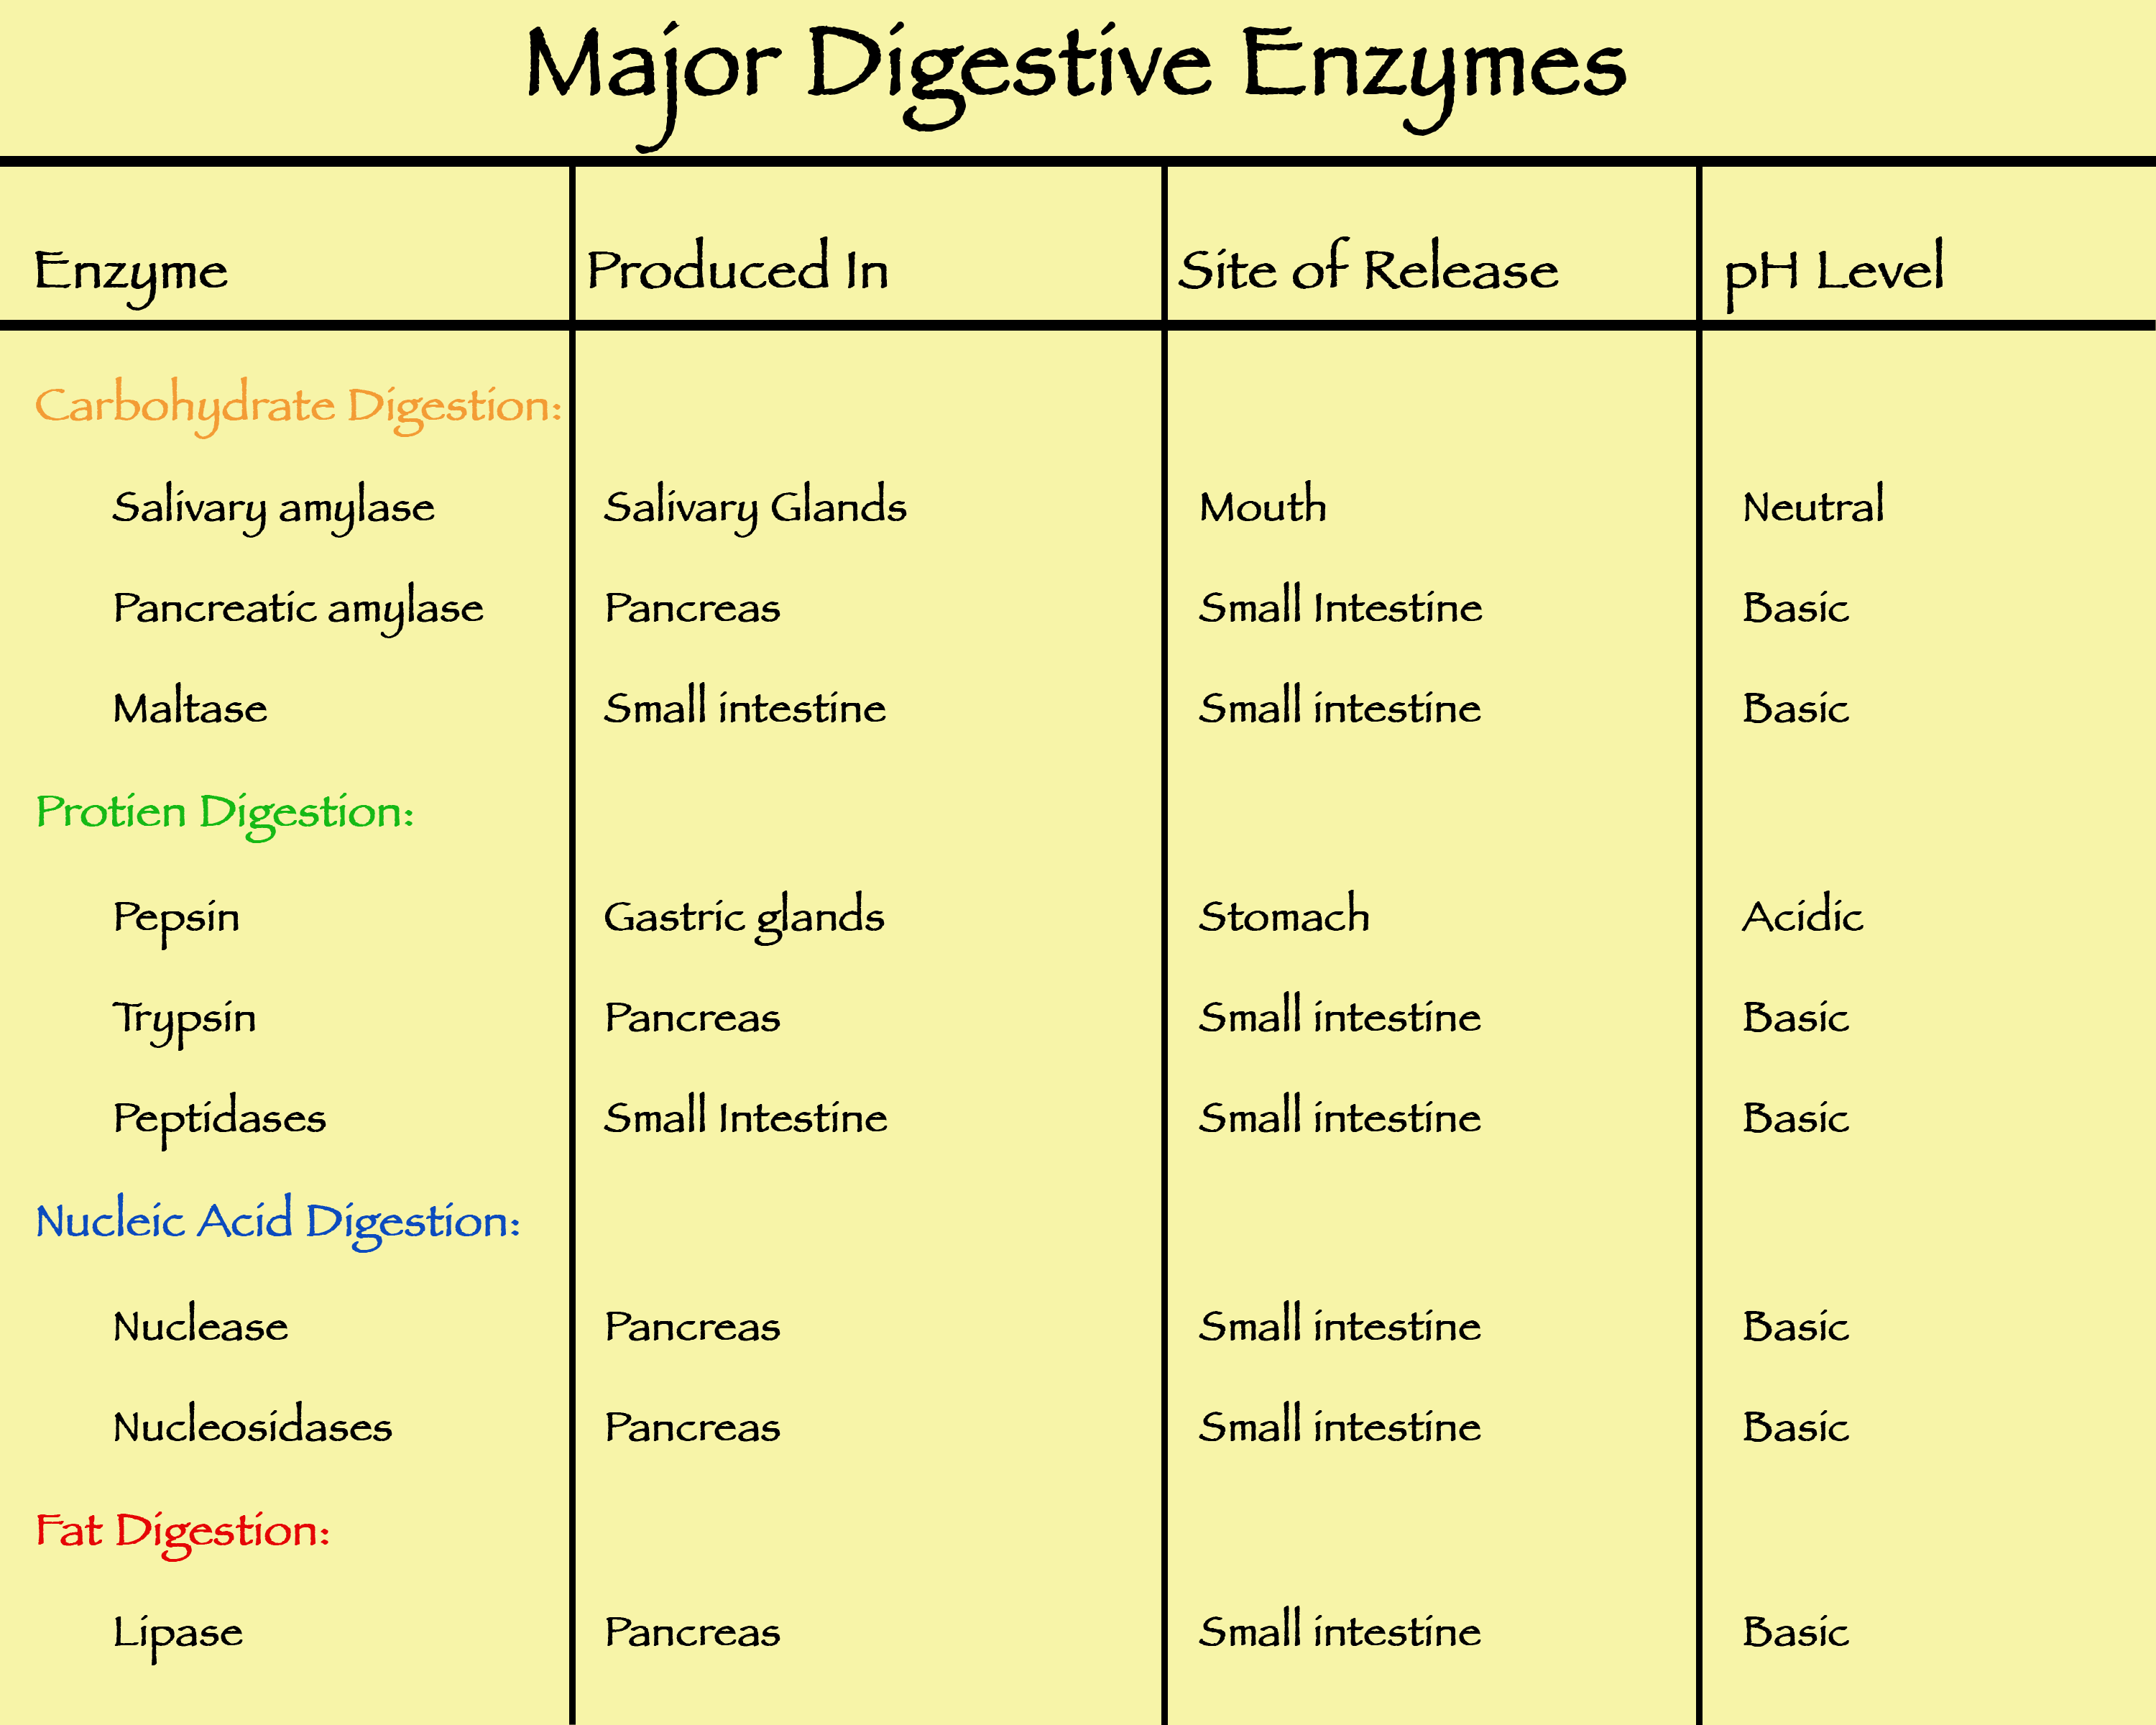 Name the digestive enzyme in the gastric juice